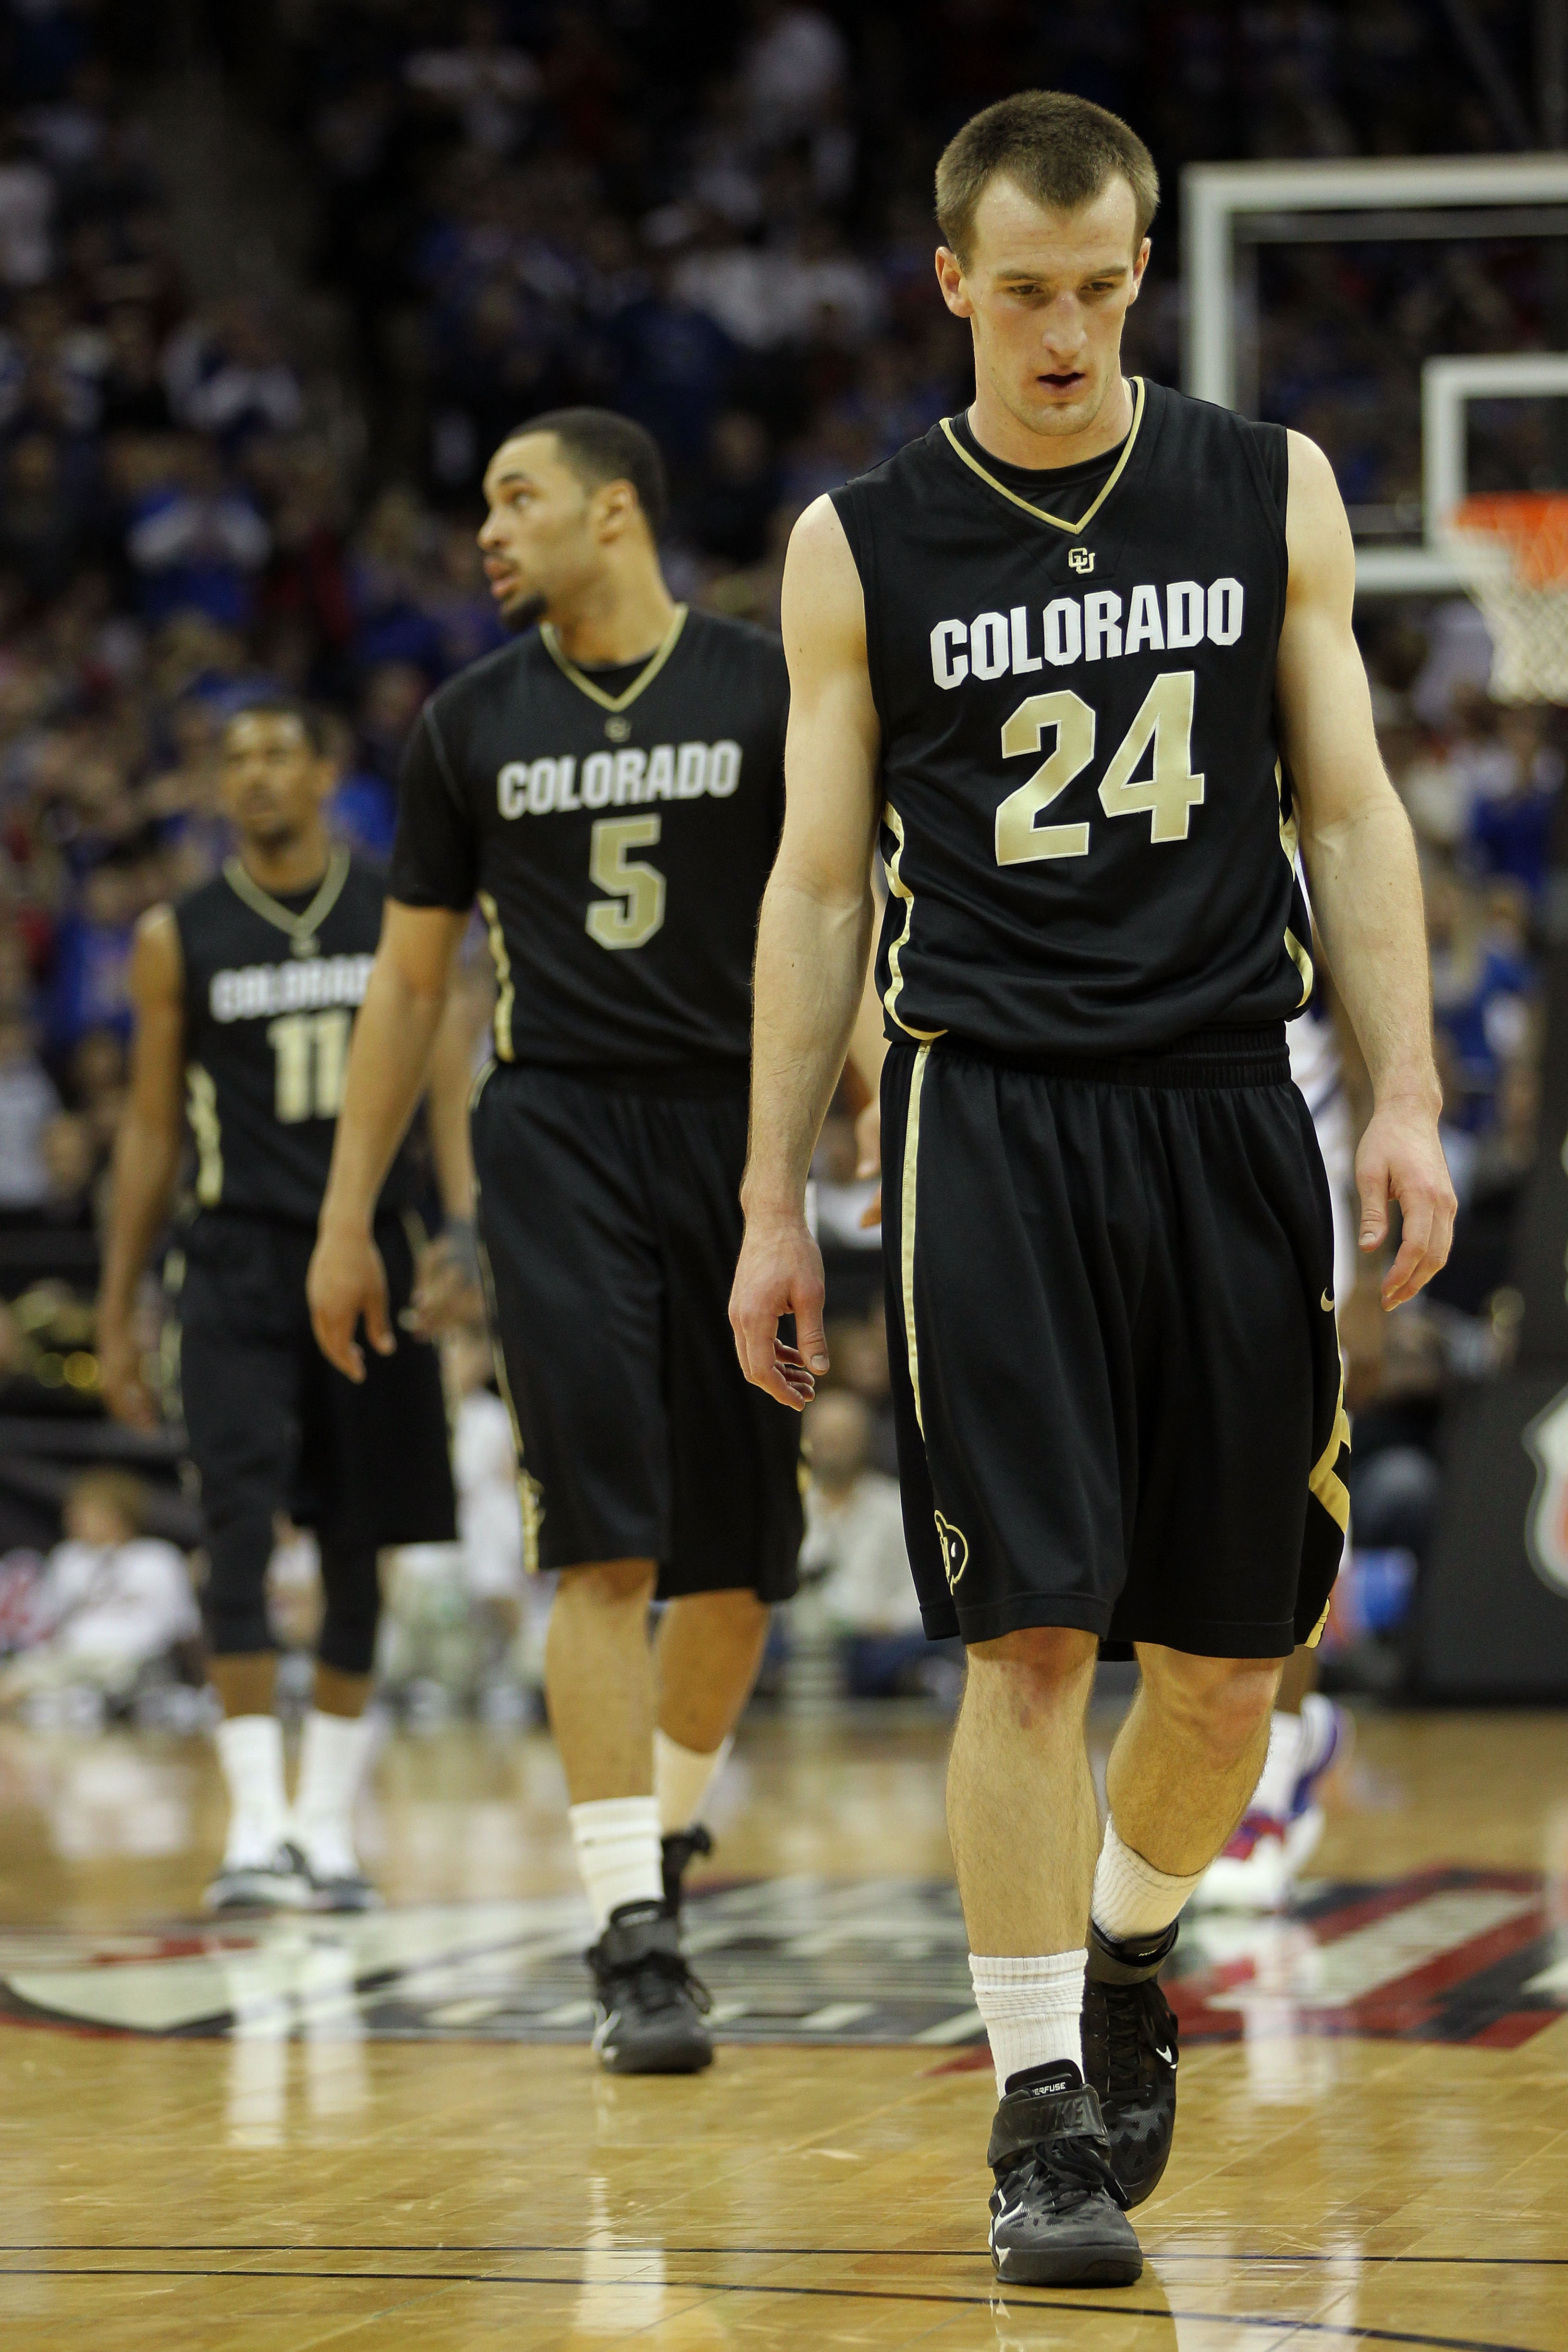 KANSAS CITY, MO - MARCH 11:  Levi Knutson #24, Marcus Relphorde #5 and Cory Higgins #11 of the Colorado Buffaloes walk on the court during their semifinal game against the Kansas Jayhawks in the 2011 Phillips 66 Big 12 Men's Basketball Tournament at Sprin